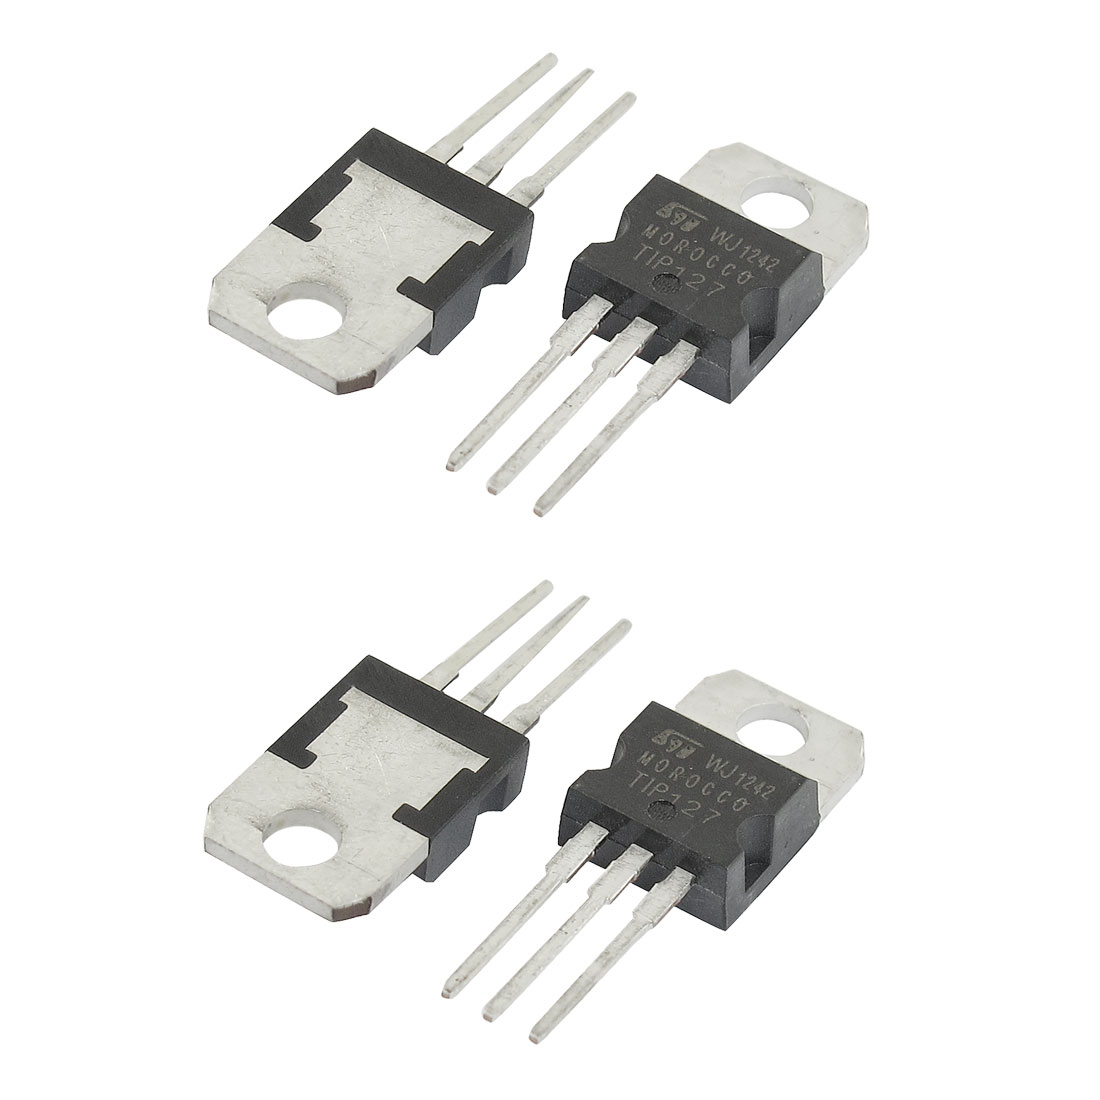 4 Pcs 100V 8A TIP127 High Voltage Fast Switching NPN PNP Power Transistors